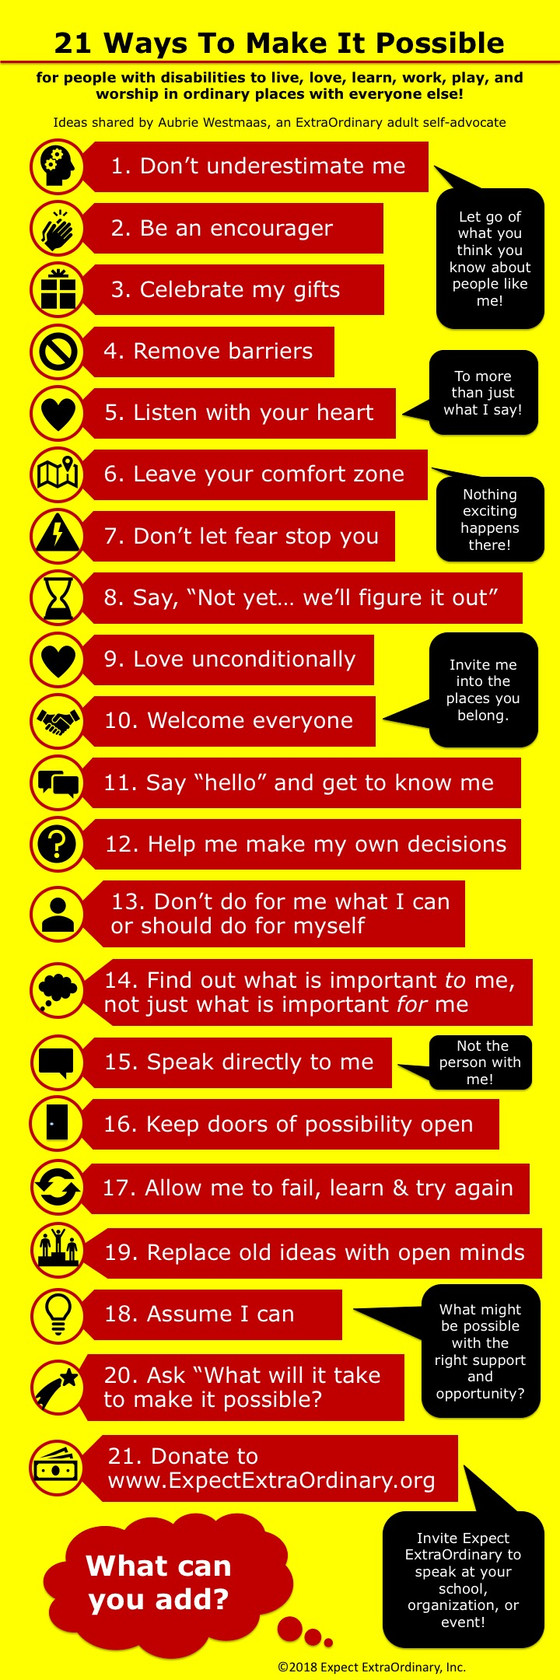 21 Ways to Make It Possible